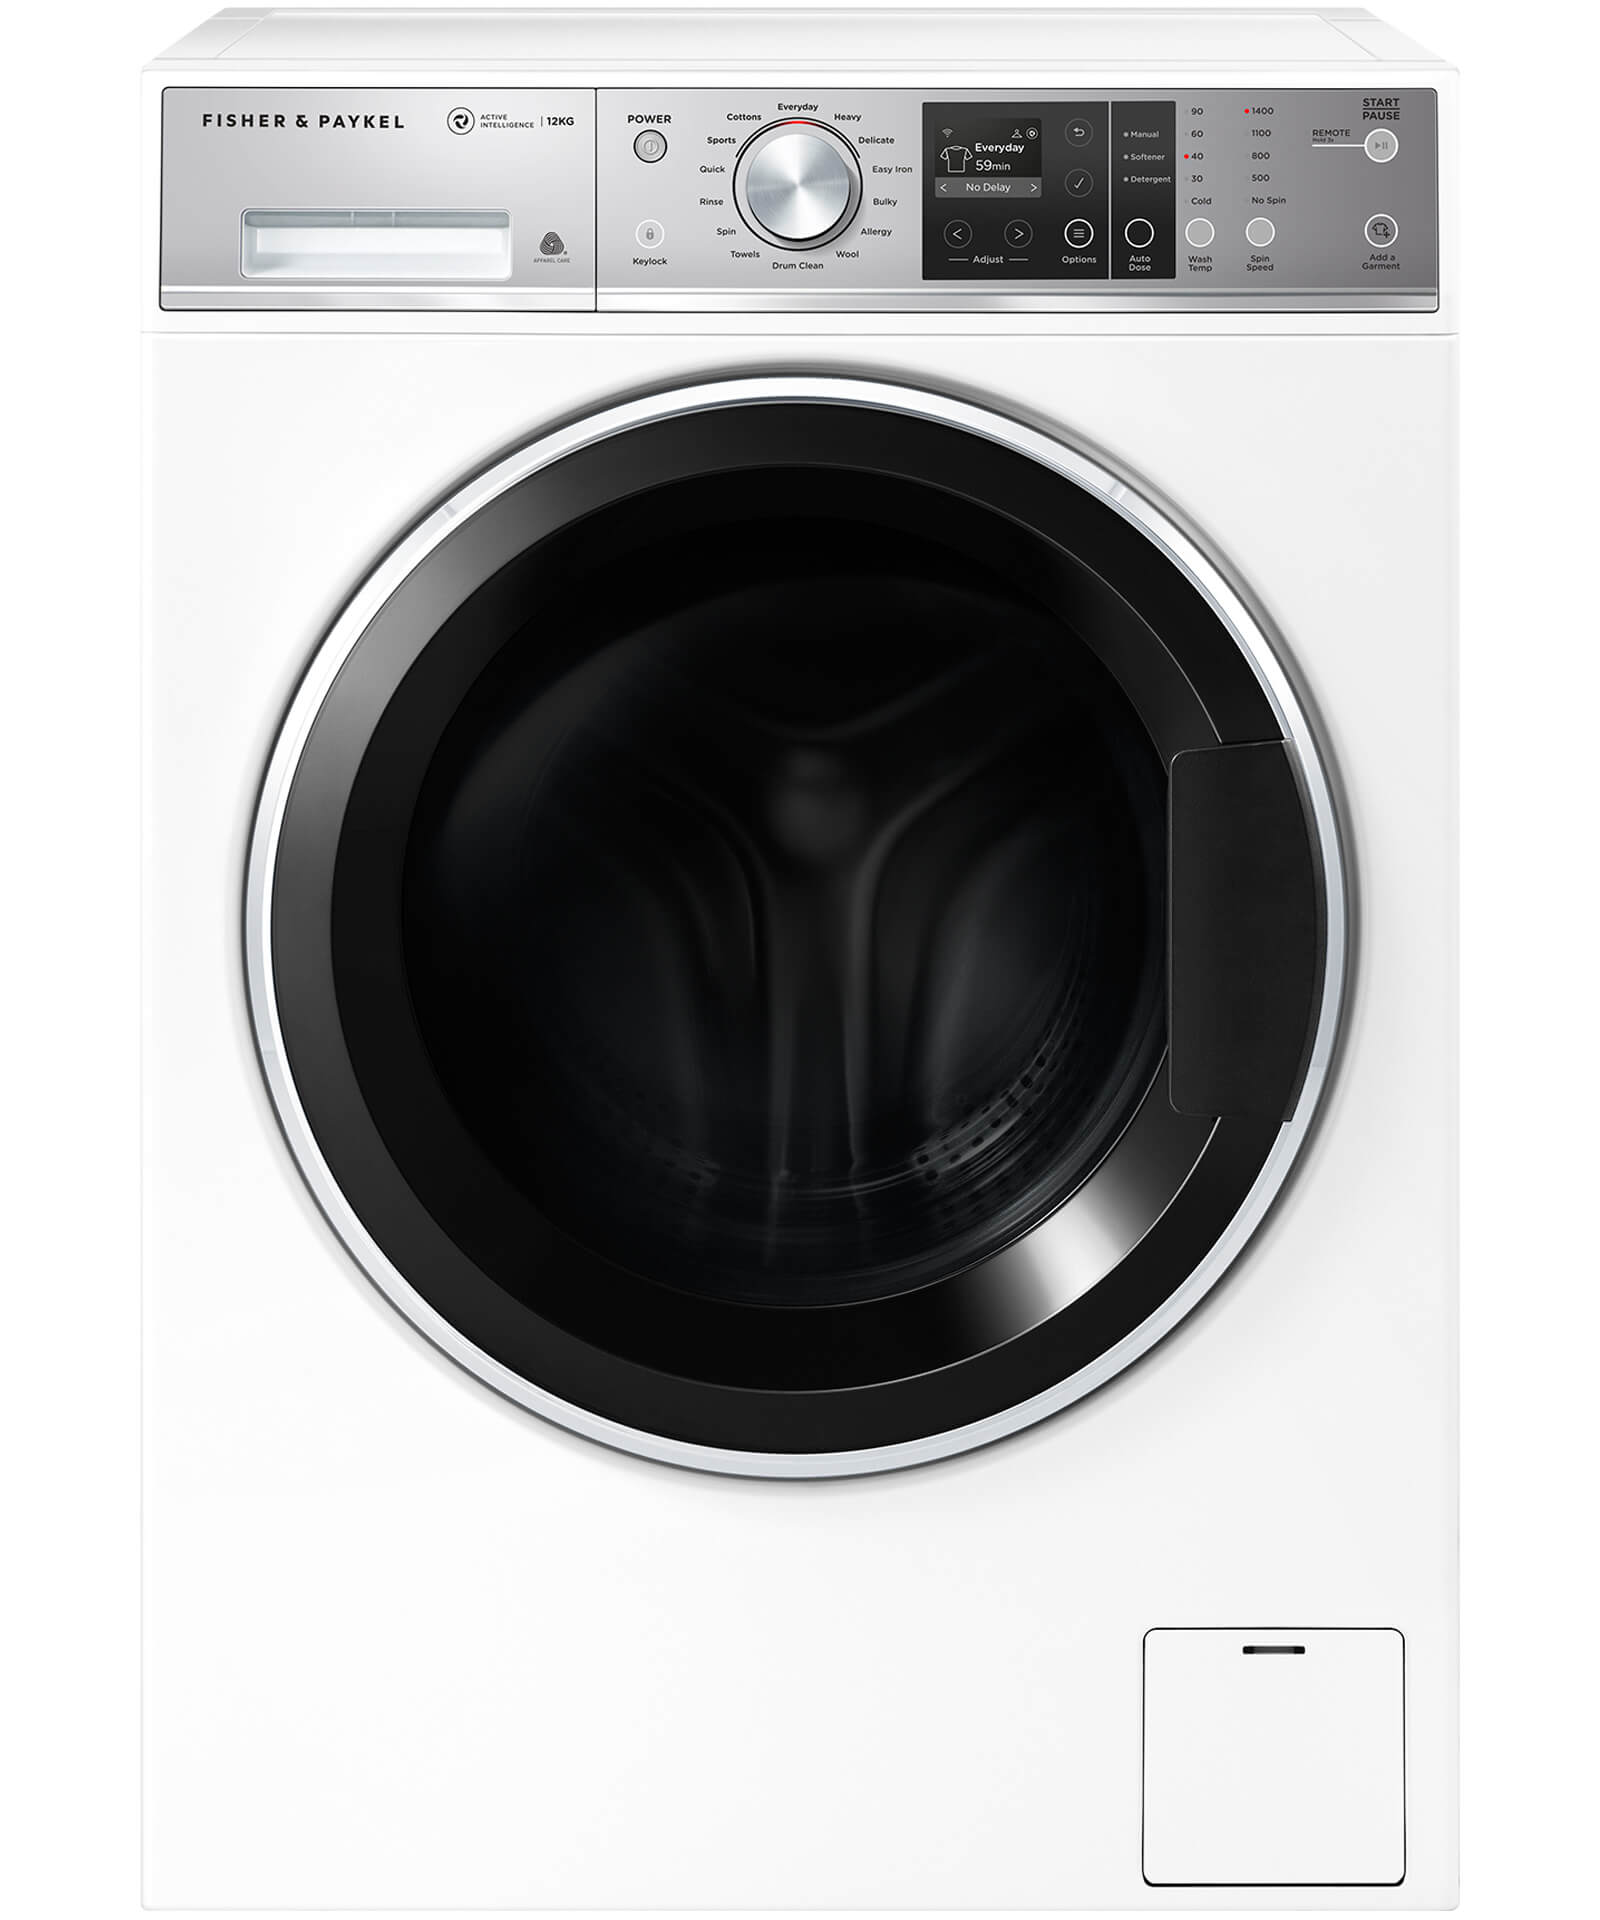 WH1260F1 - Front Loader Washing Machine 12kg ActiveIntelligence™ - 92238